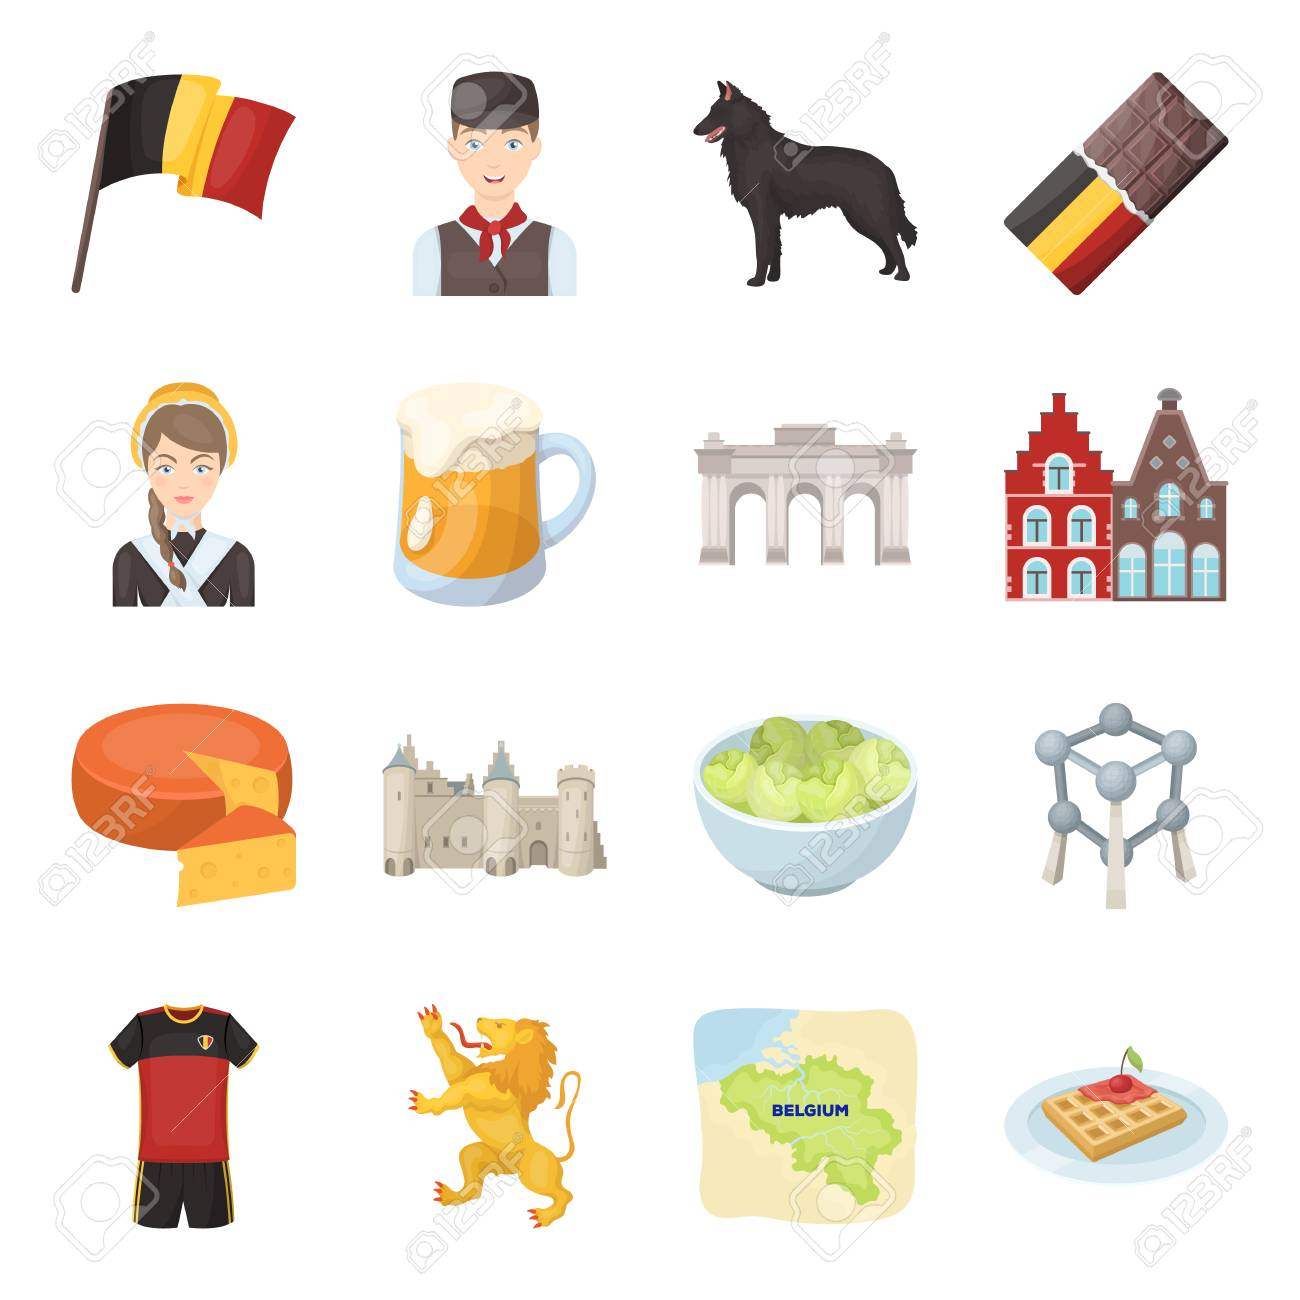 Flag, Brussels, chocolate, cheese, stained glass, lion, and other symbols. Belgium set collection icons in cartoon style vector symbol stock illustration web. - 81412443